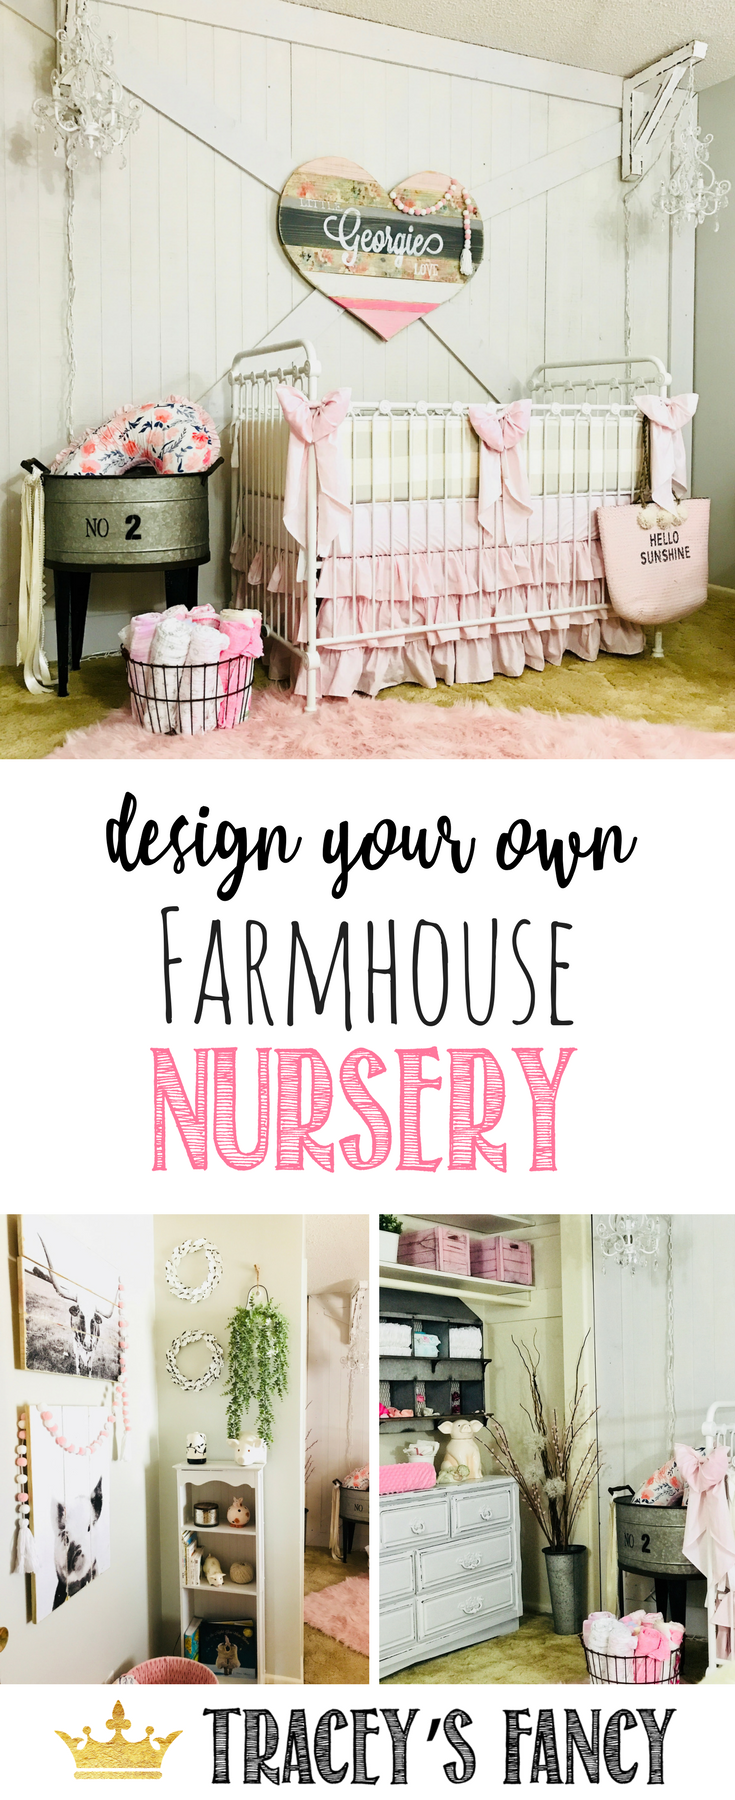 Design Your Own Farmhouse Nursery By Tracey S Fancy